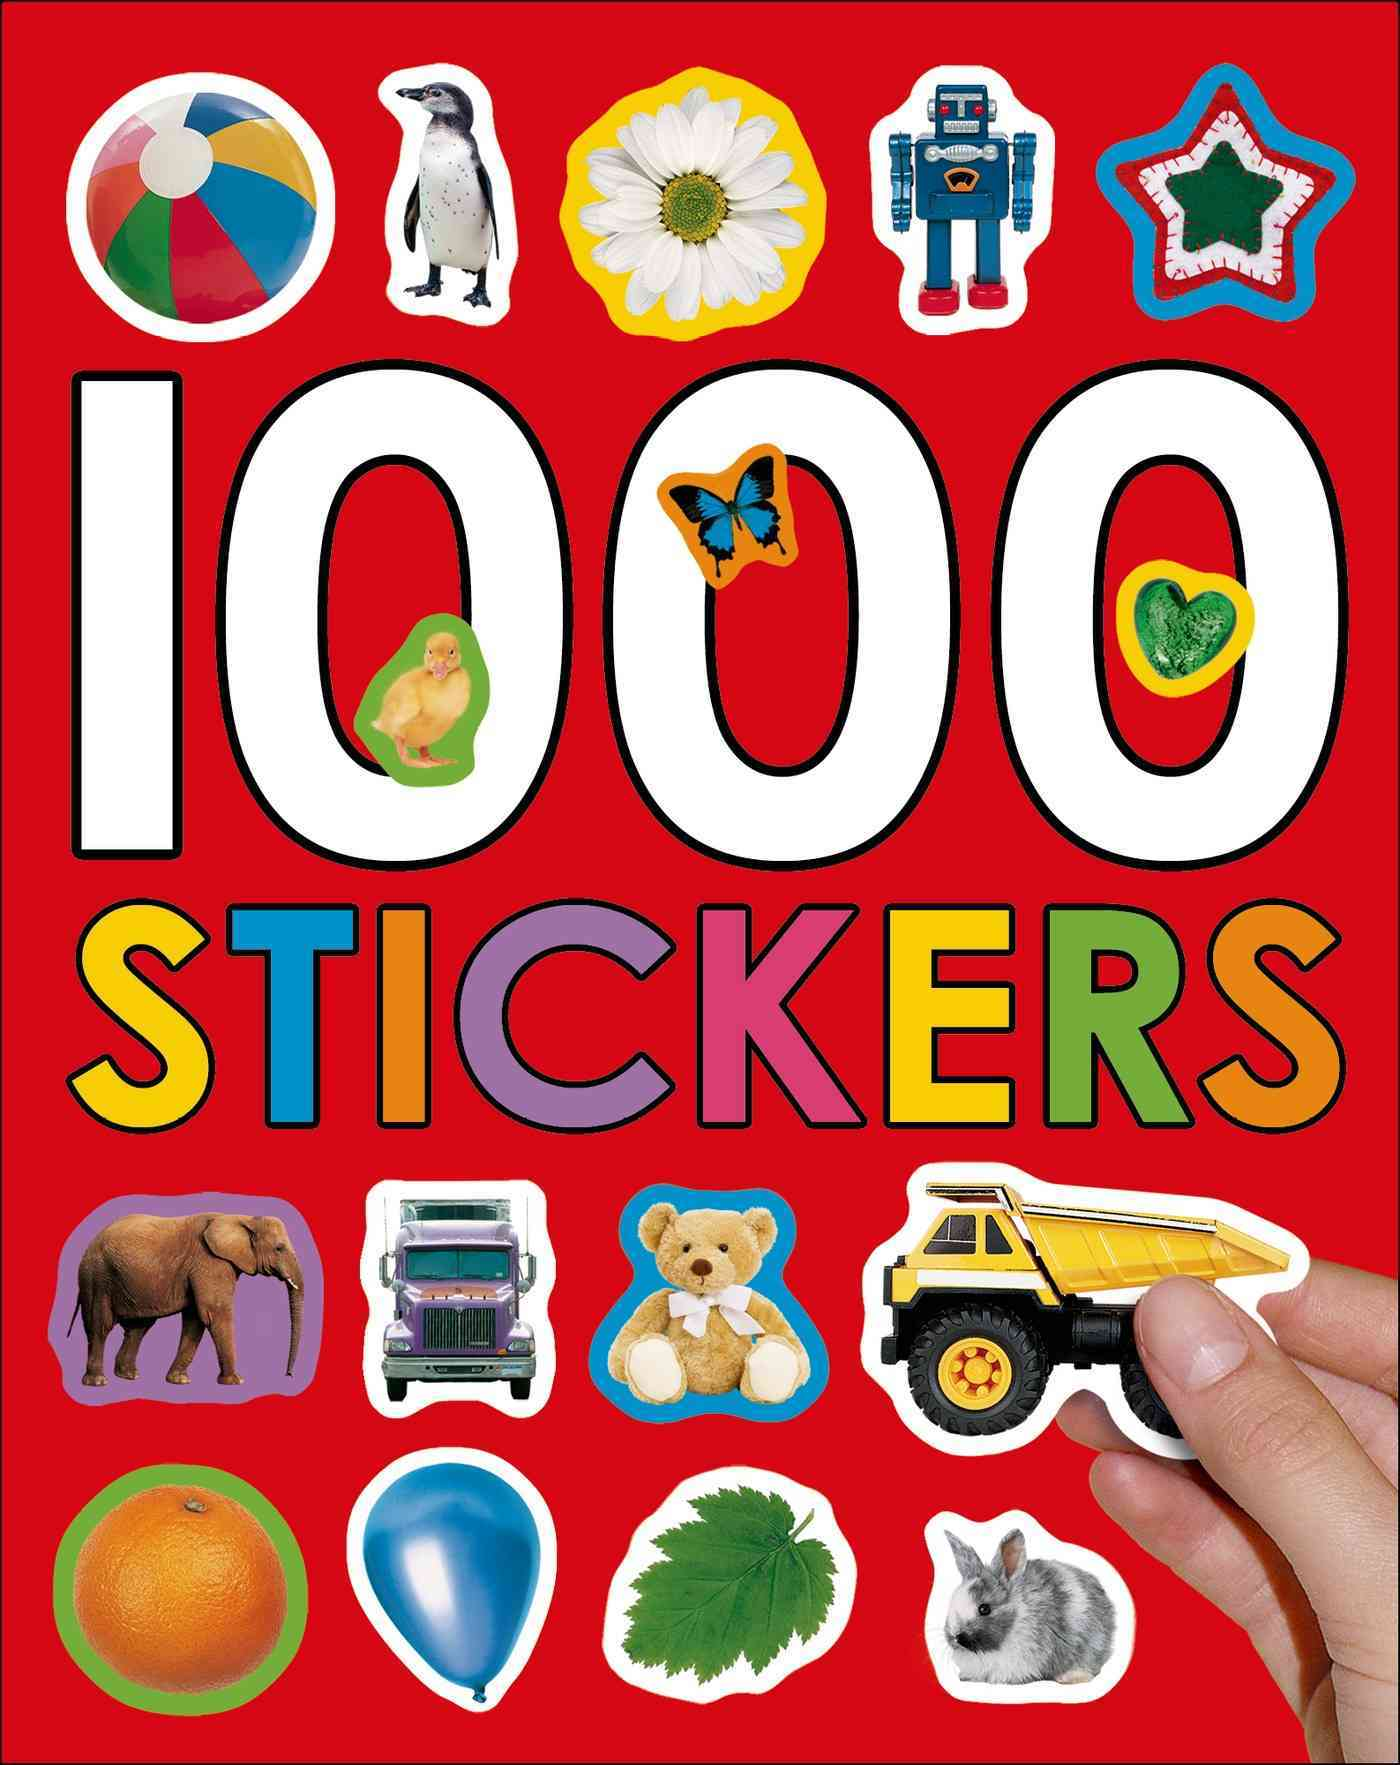 1000 Stickers (Paperback)